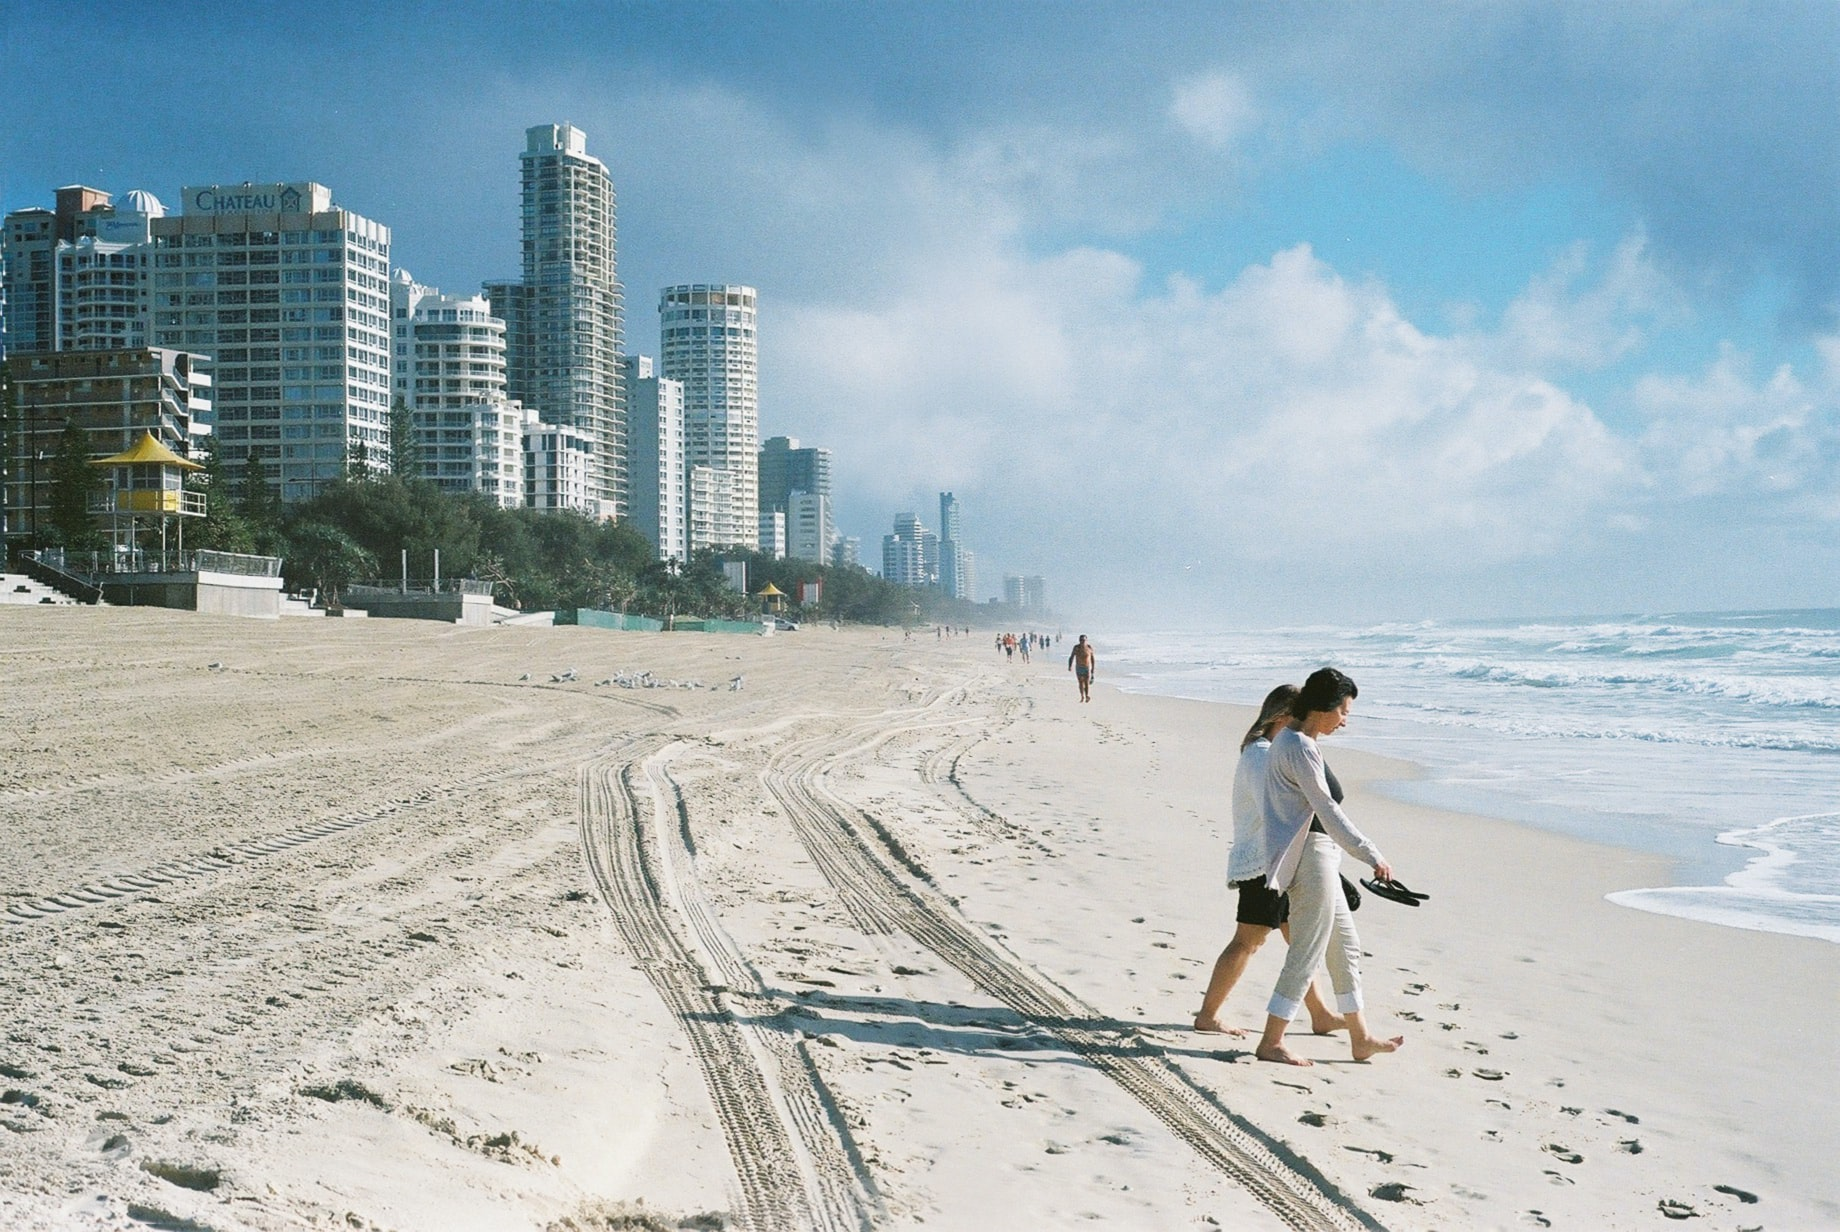 People on a city sand coastline at Surfers Paradise